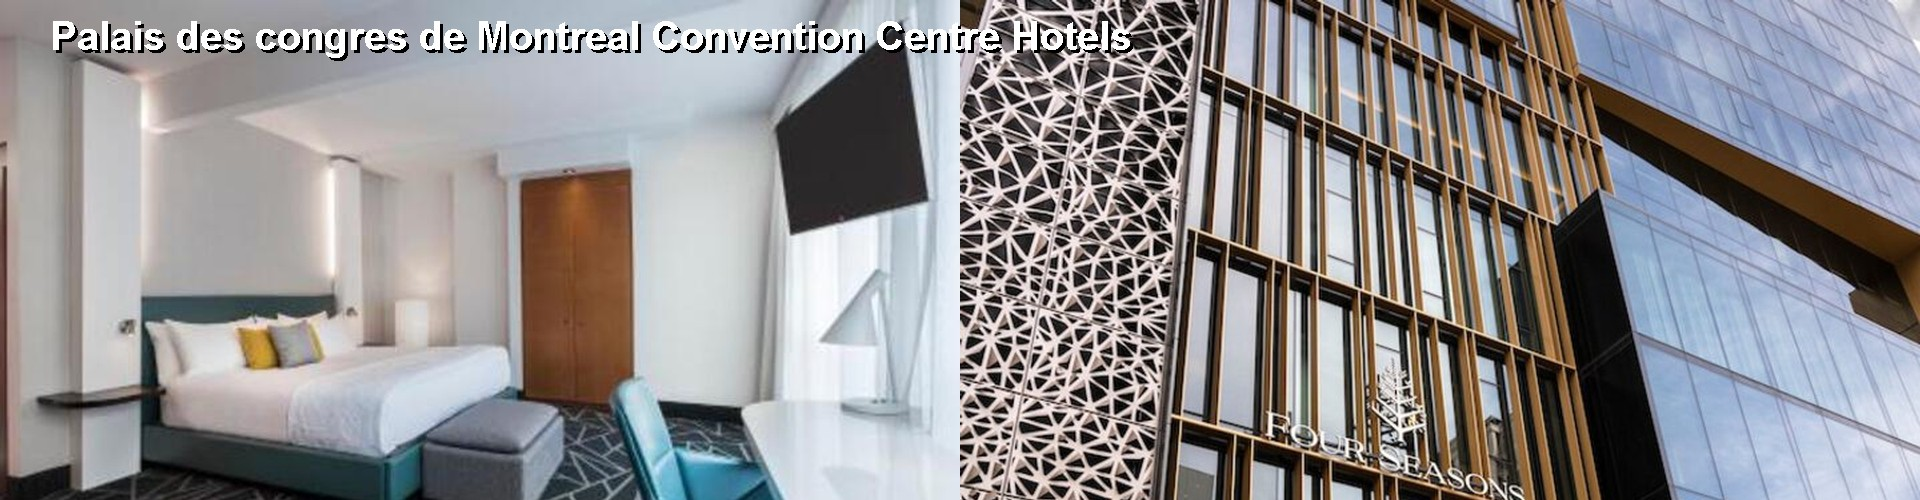 5 Best Hotels near Palais des congres de Montreal Convention Centre